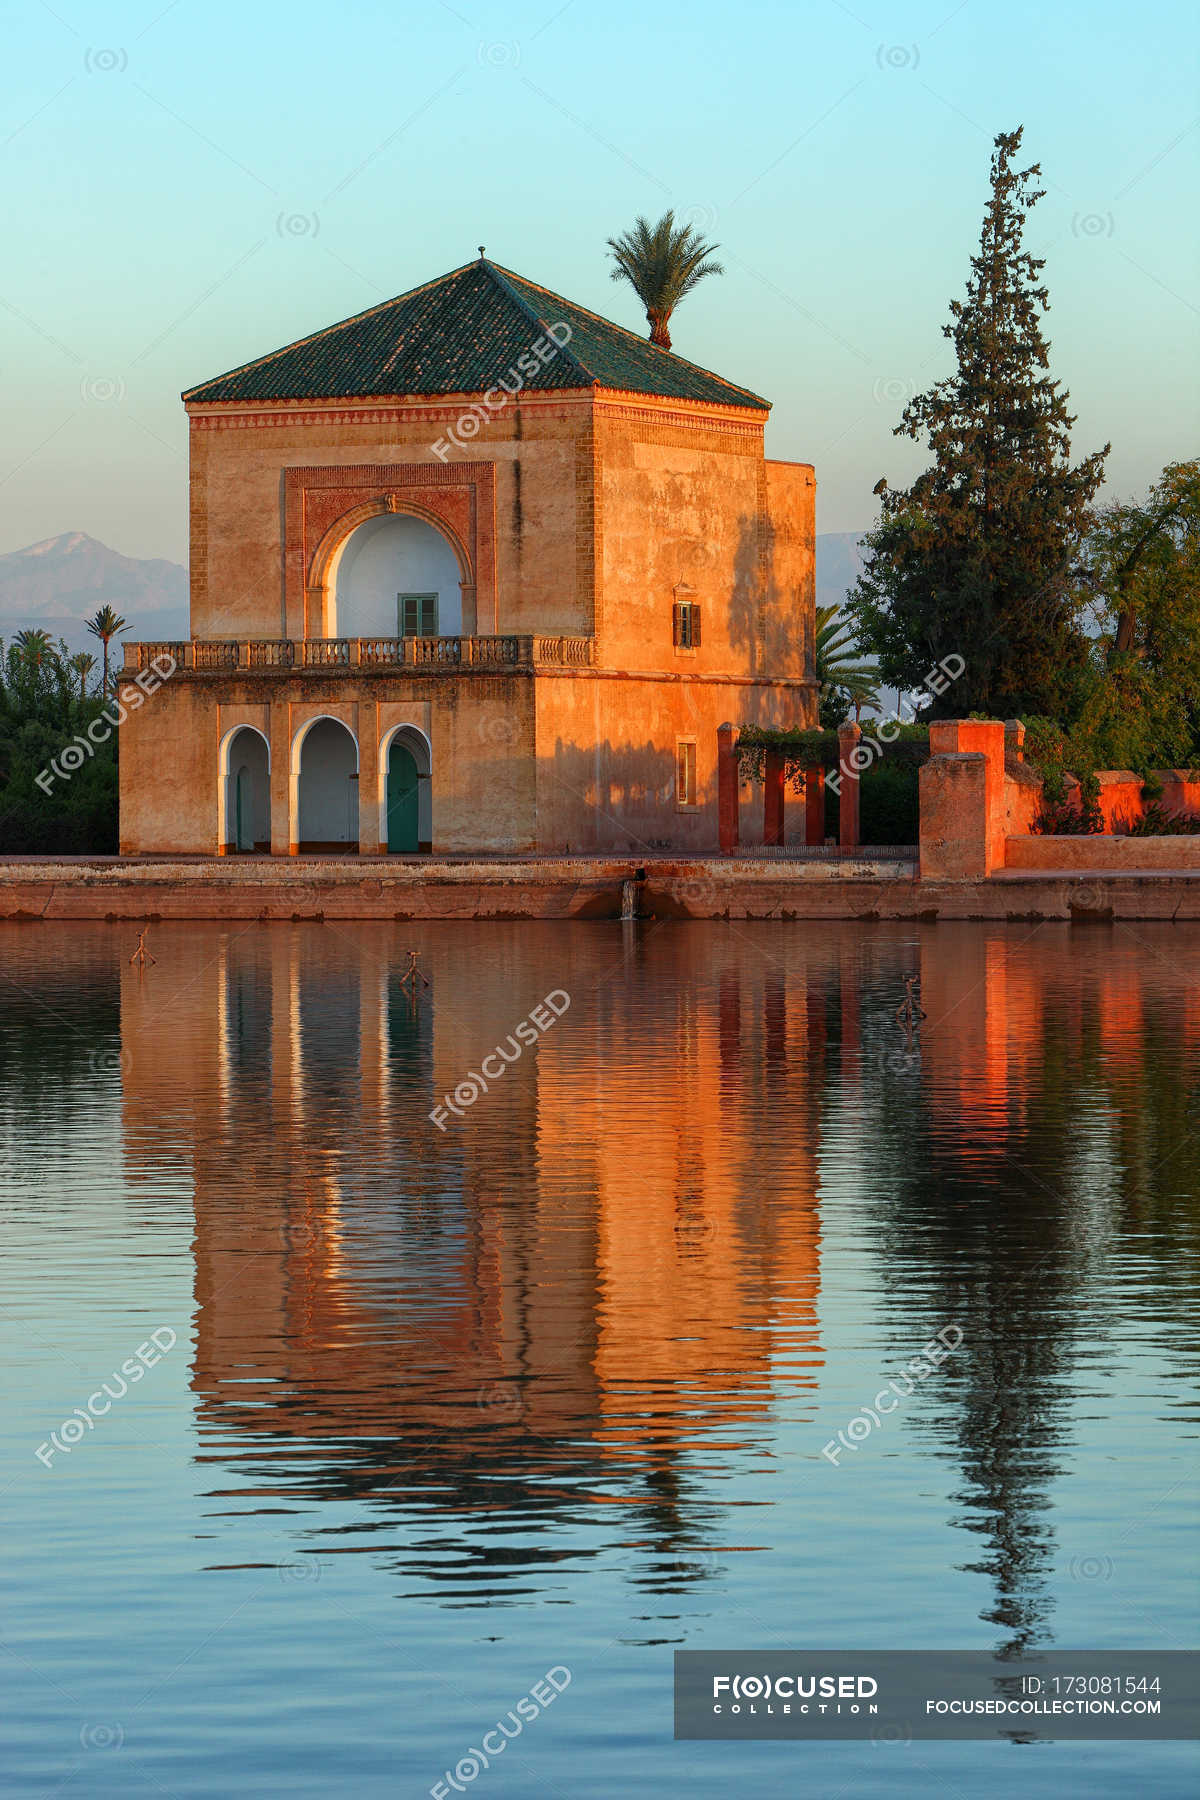 The Menara gardens are located in the west of Marrakech, Morocco, at ...